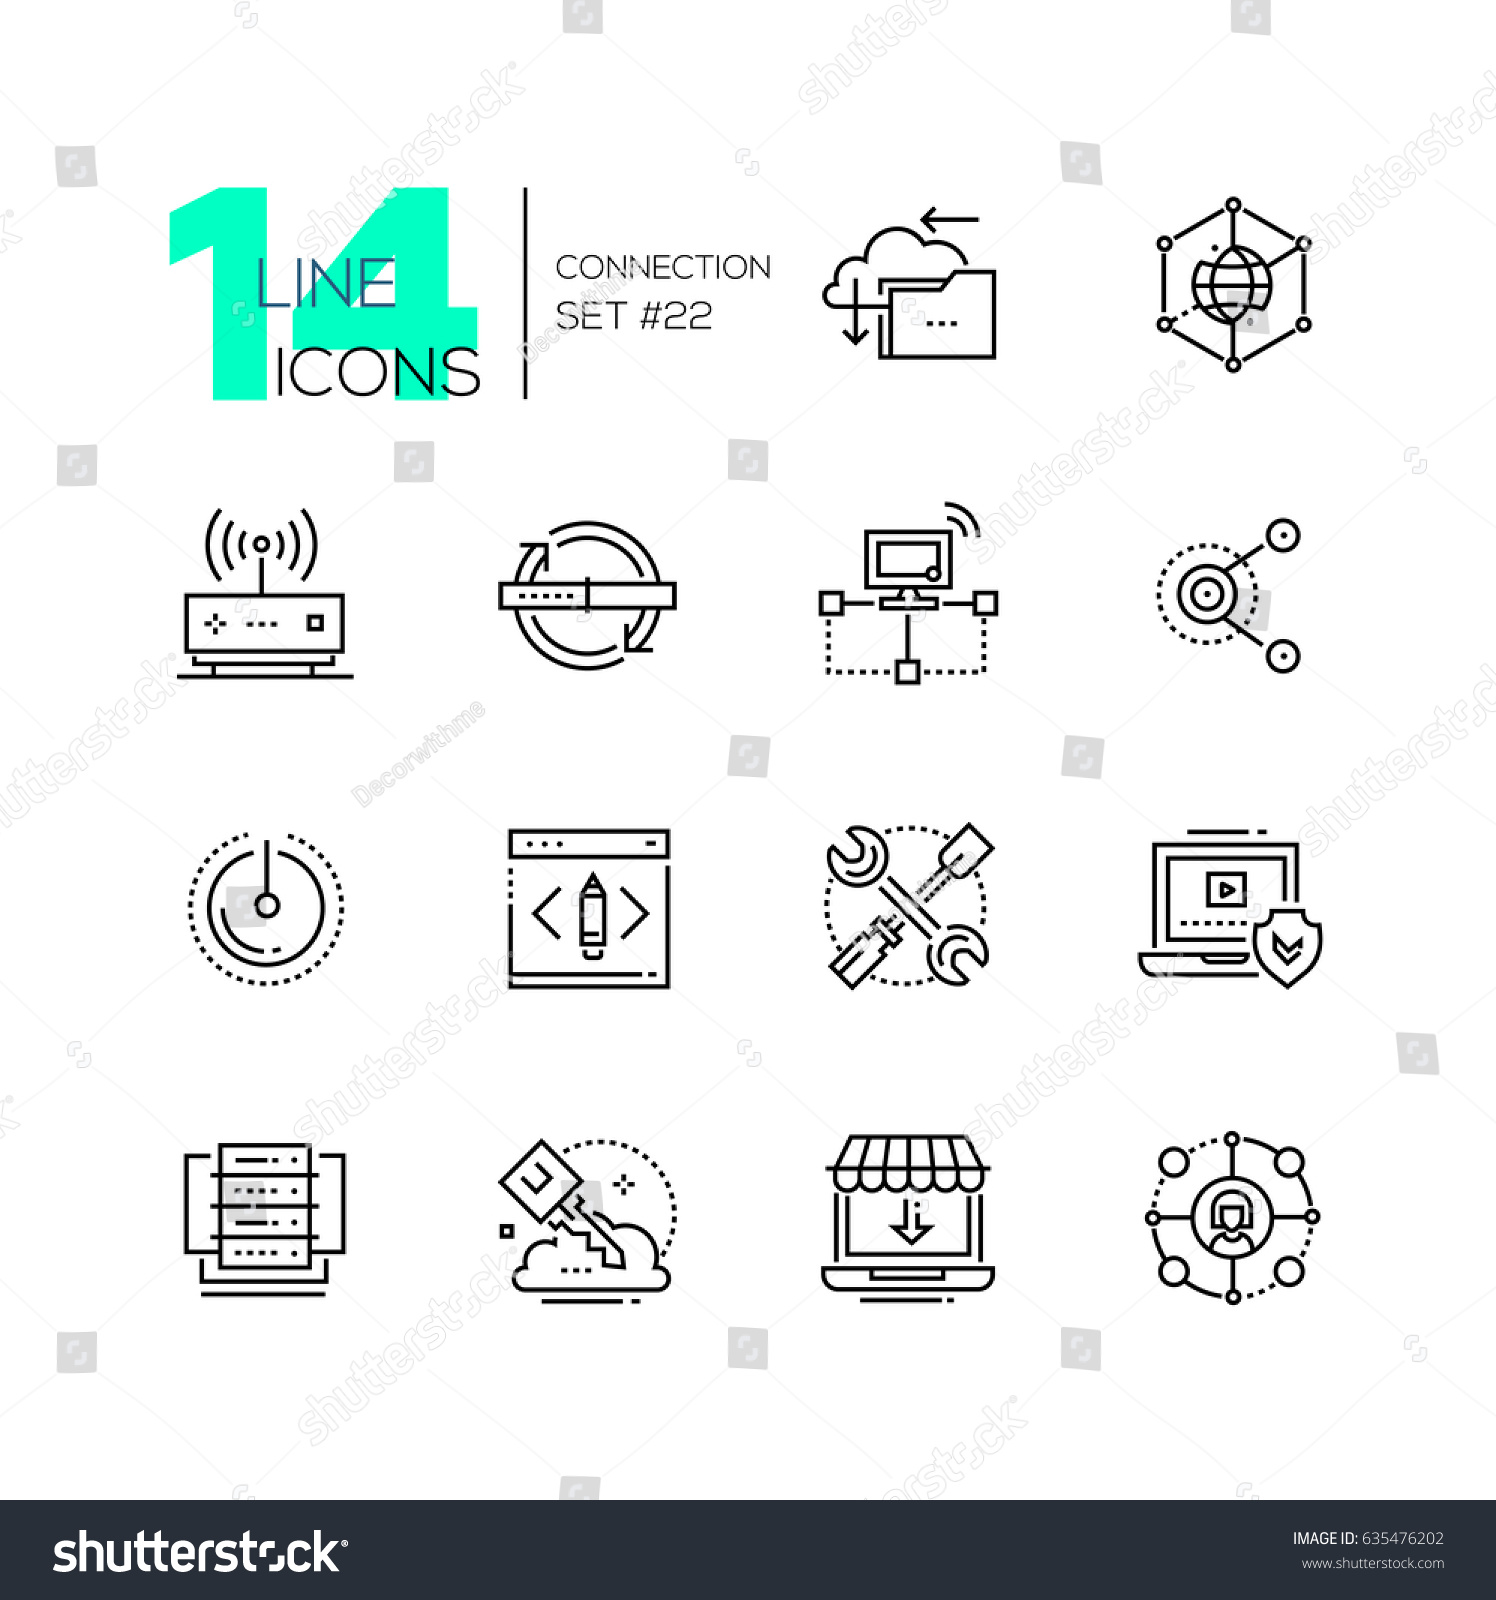 Connection Monochromatic Modern Single Line Icons Stock Illustration Phone Wiring Diagram Set Cloud Interlink Power Button